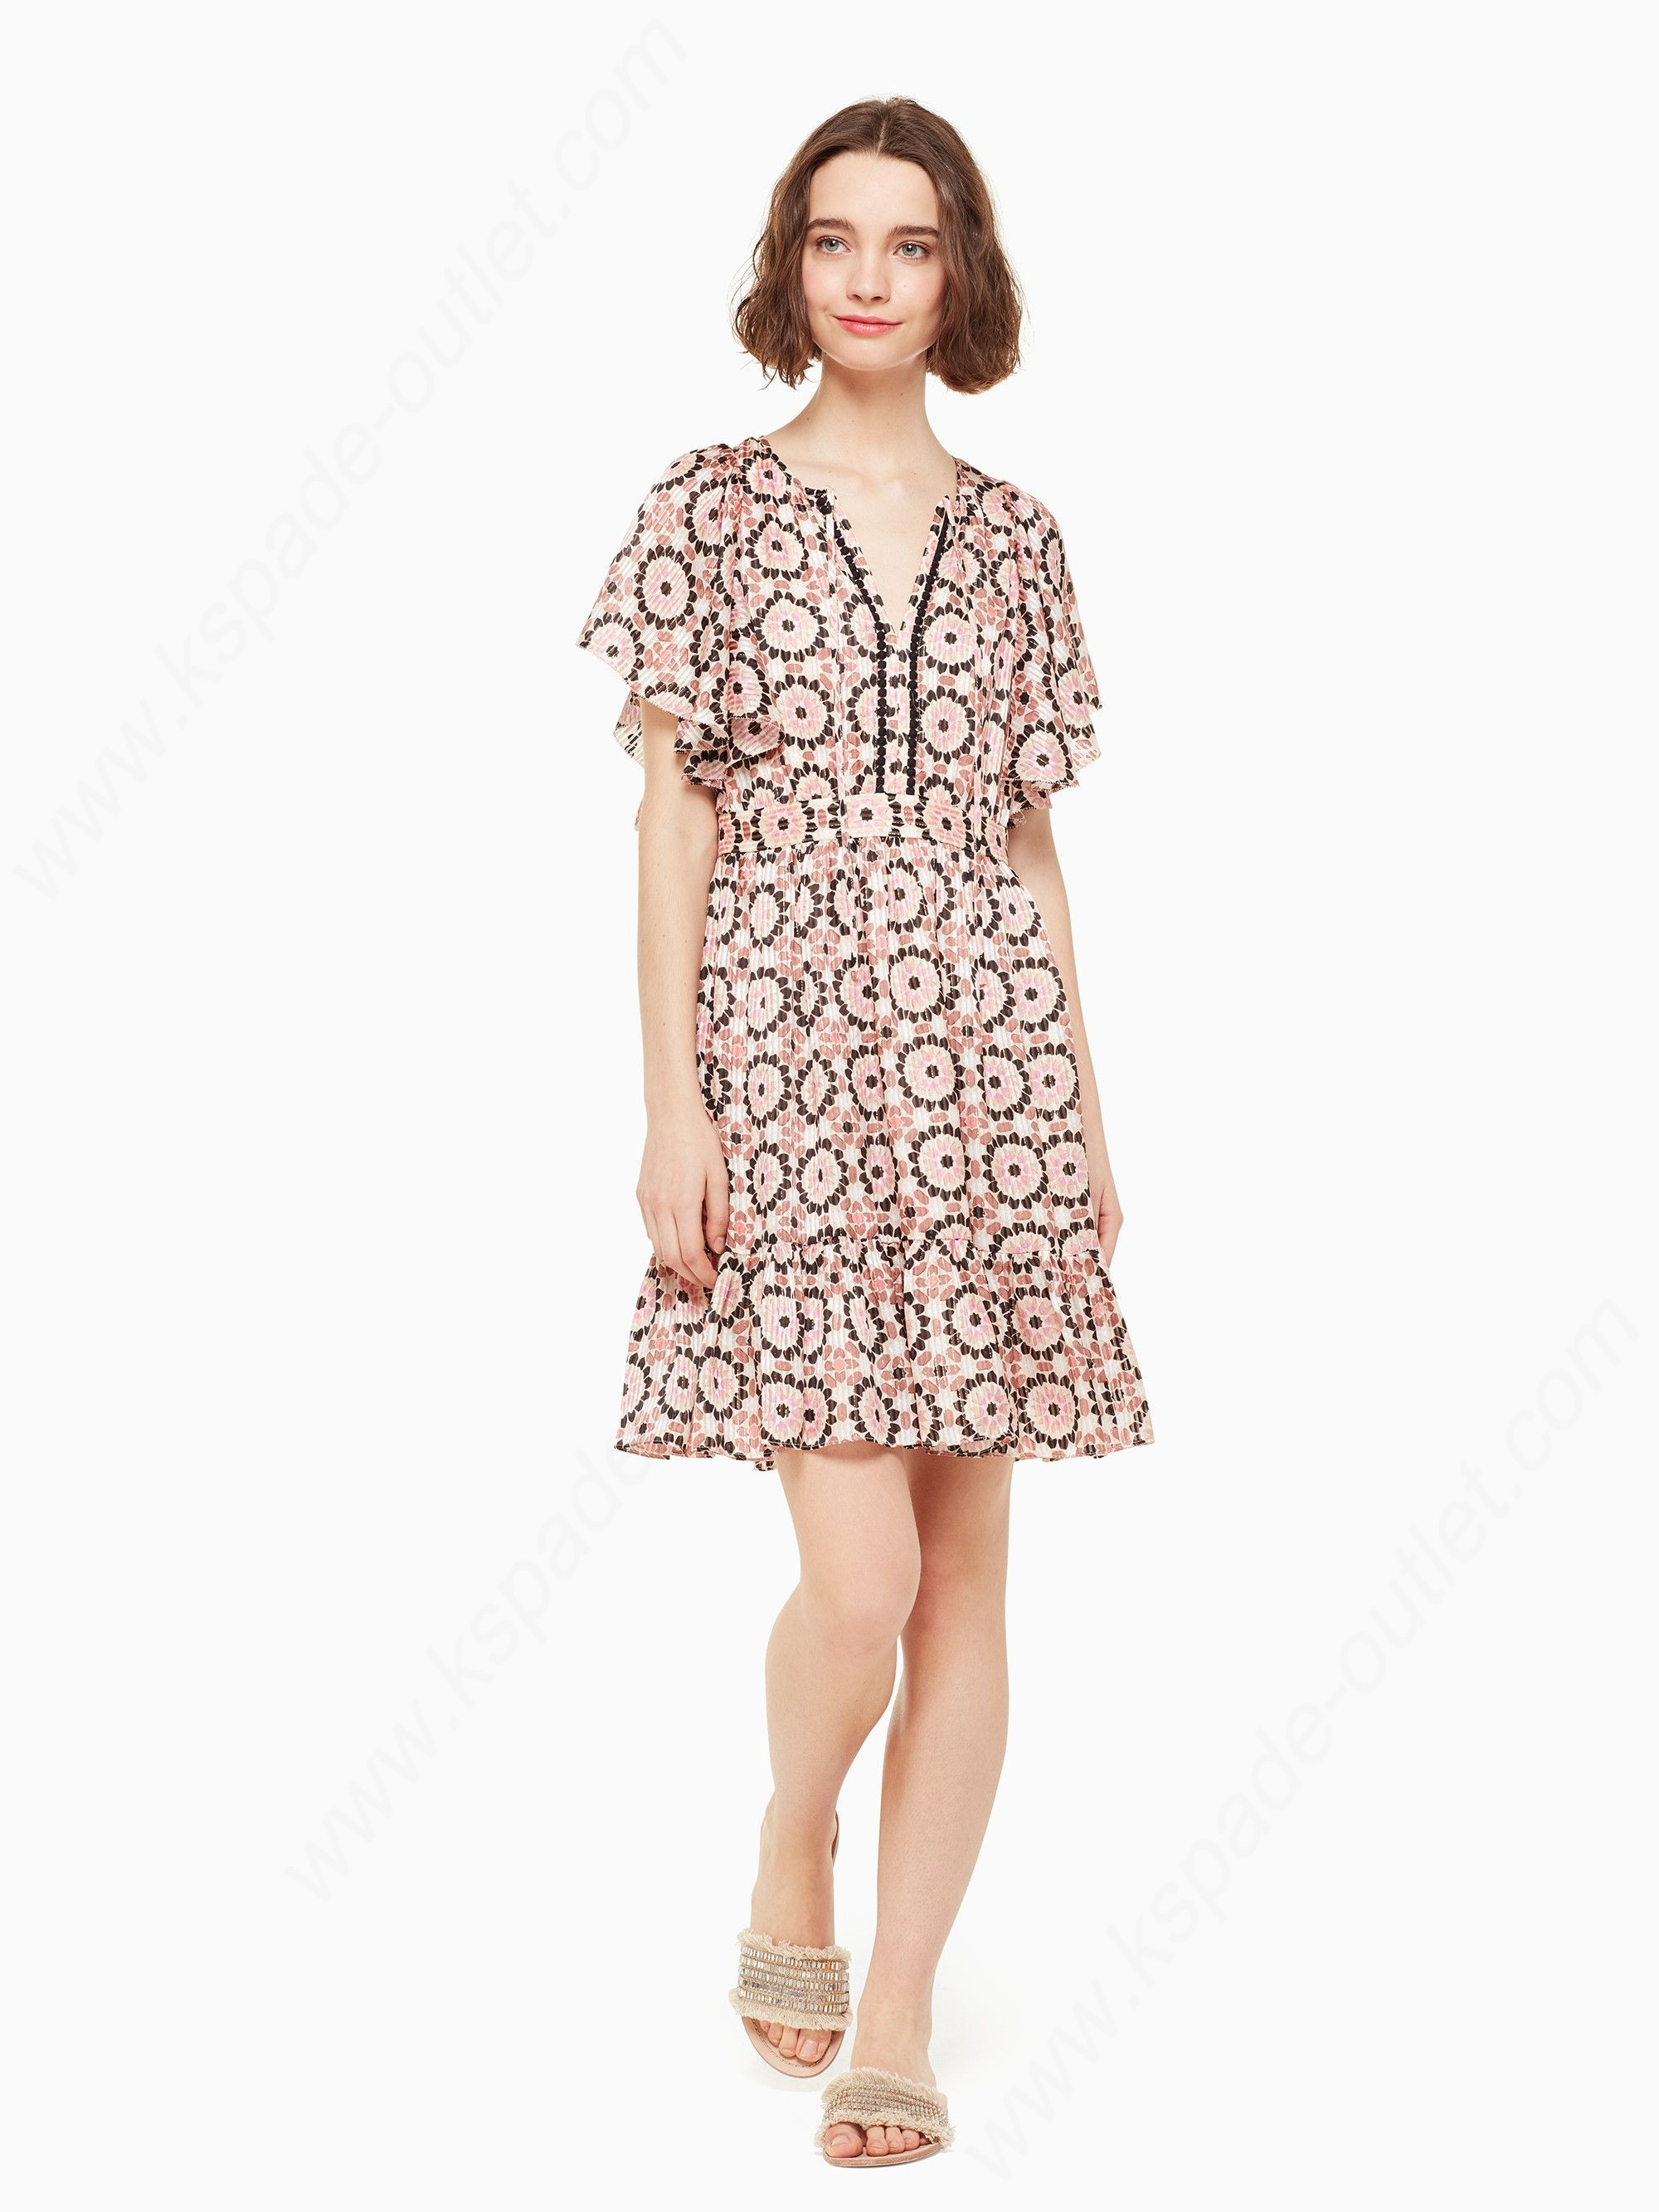 Kate Spade Womens Clothing Floral Mosaic Flutter Dress - Kate Spade Womens Clothing Floral Mosaic Flutter Dress